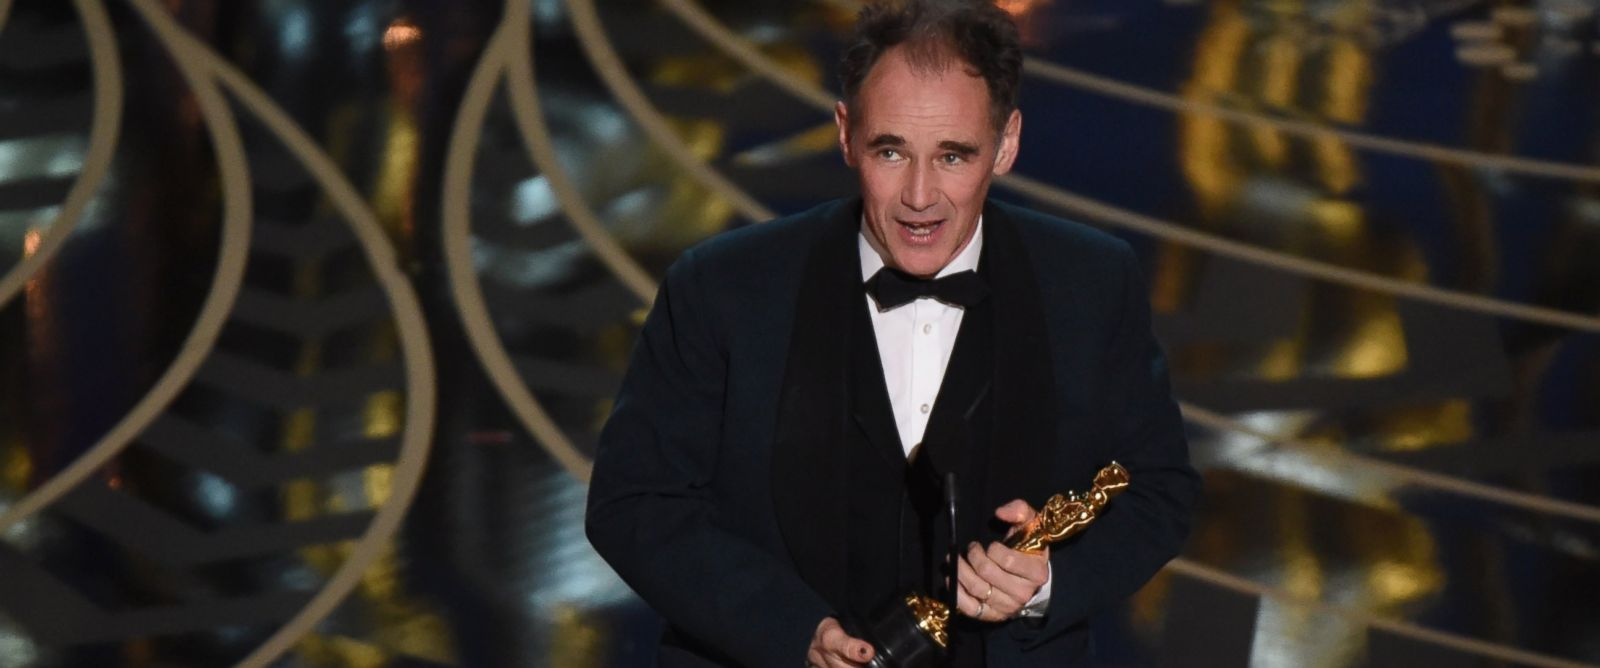 PHOTO:Actor Mark Rylance accepts his award for Best Supporting Actor at the 88th Oscars, Feb. 28, 2016, in Hollywood, Calif.